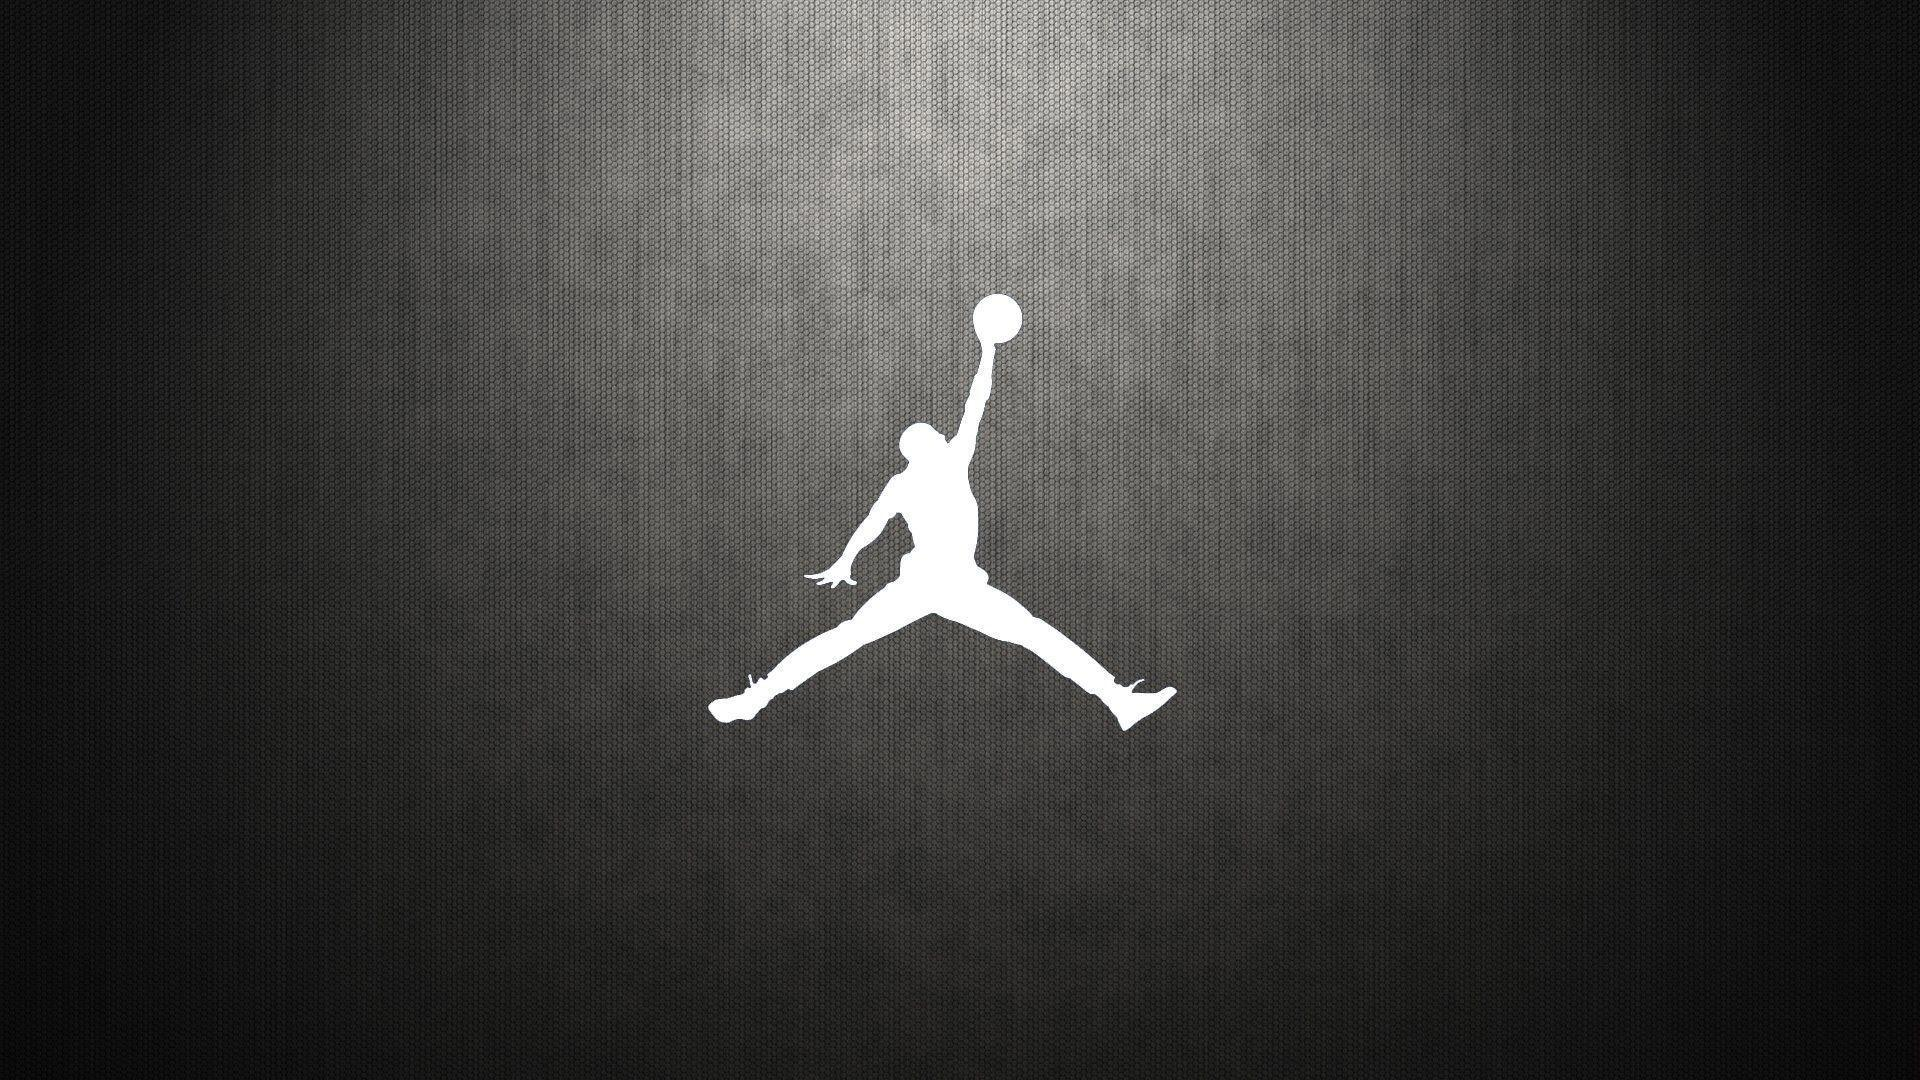 jordan wallpapers hd wallpaper cave